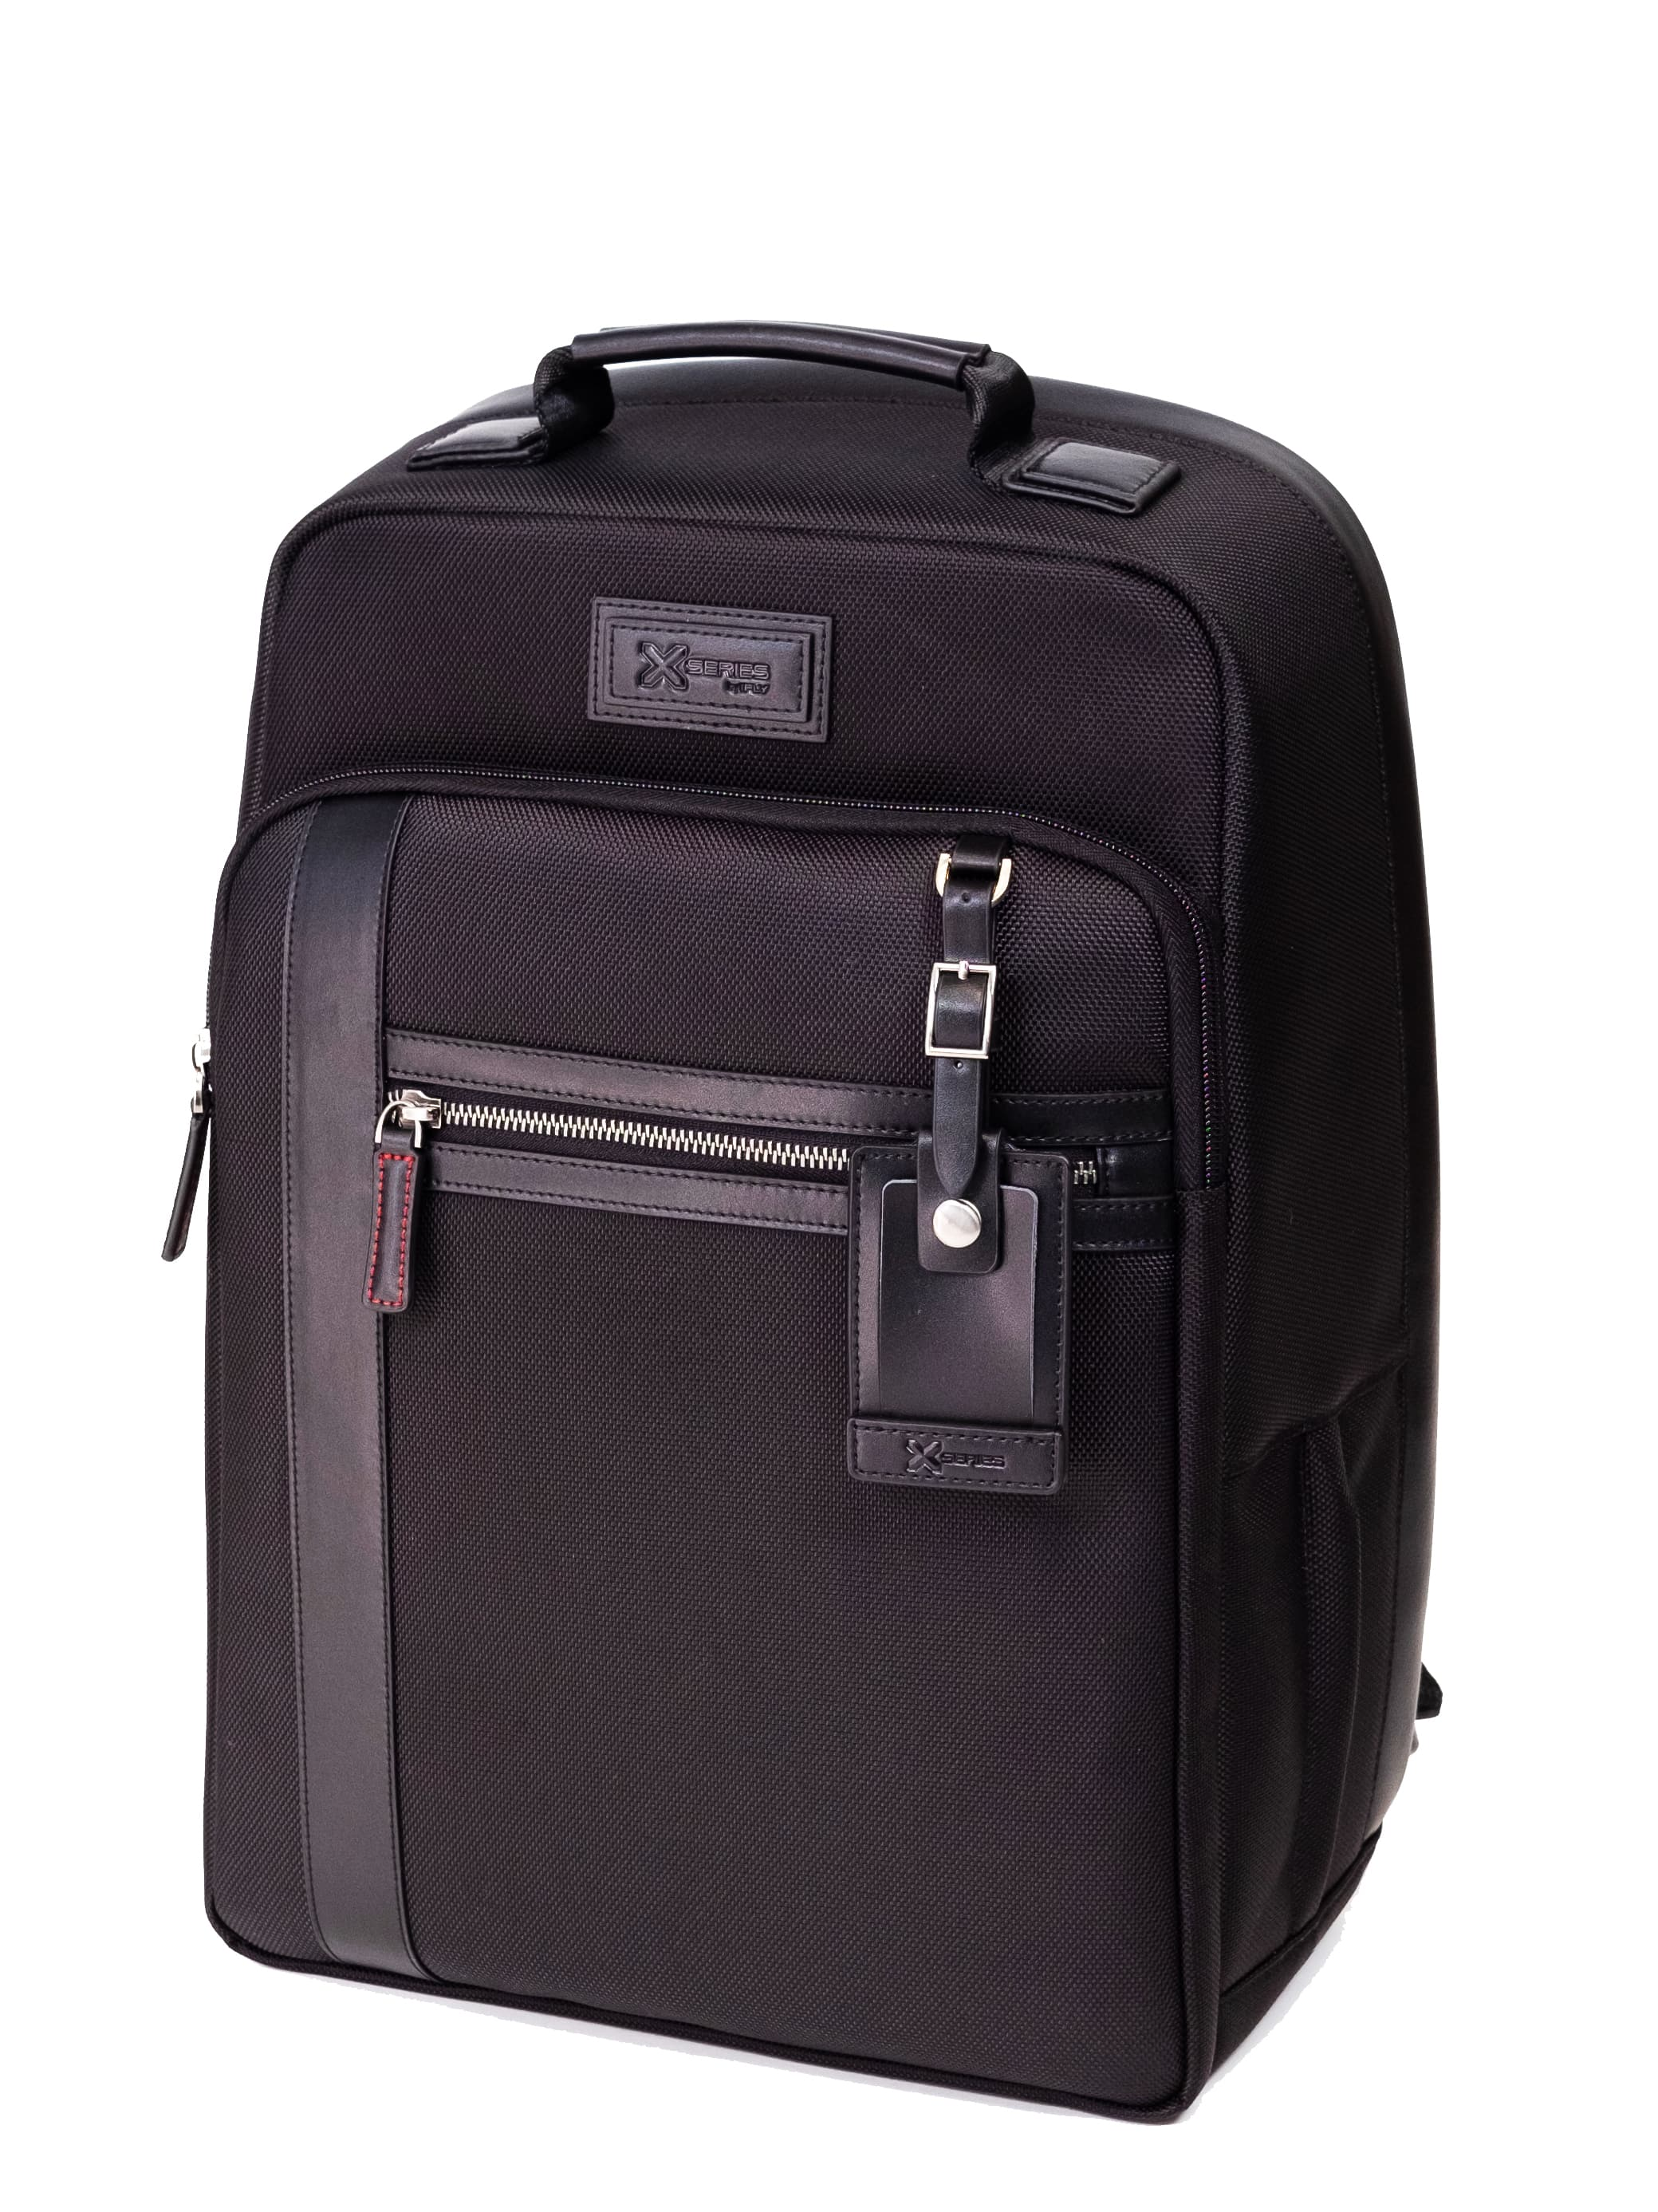 "17"" X Series by iFLY Business Backpack w/ RFID Pocket & USB Port $36 + Free Shipping"